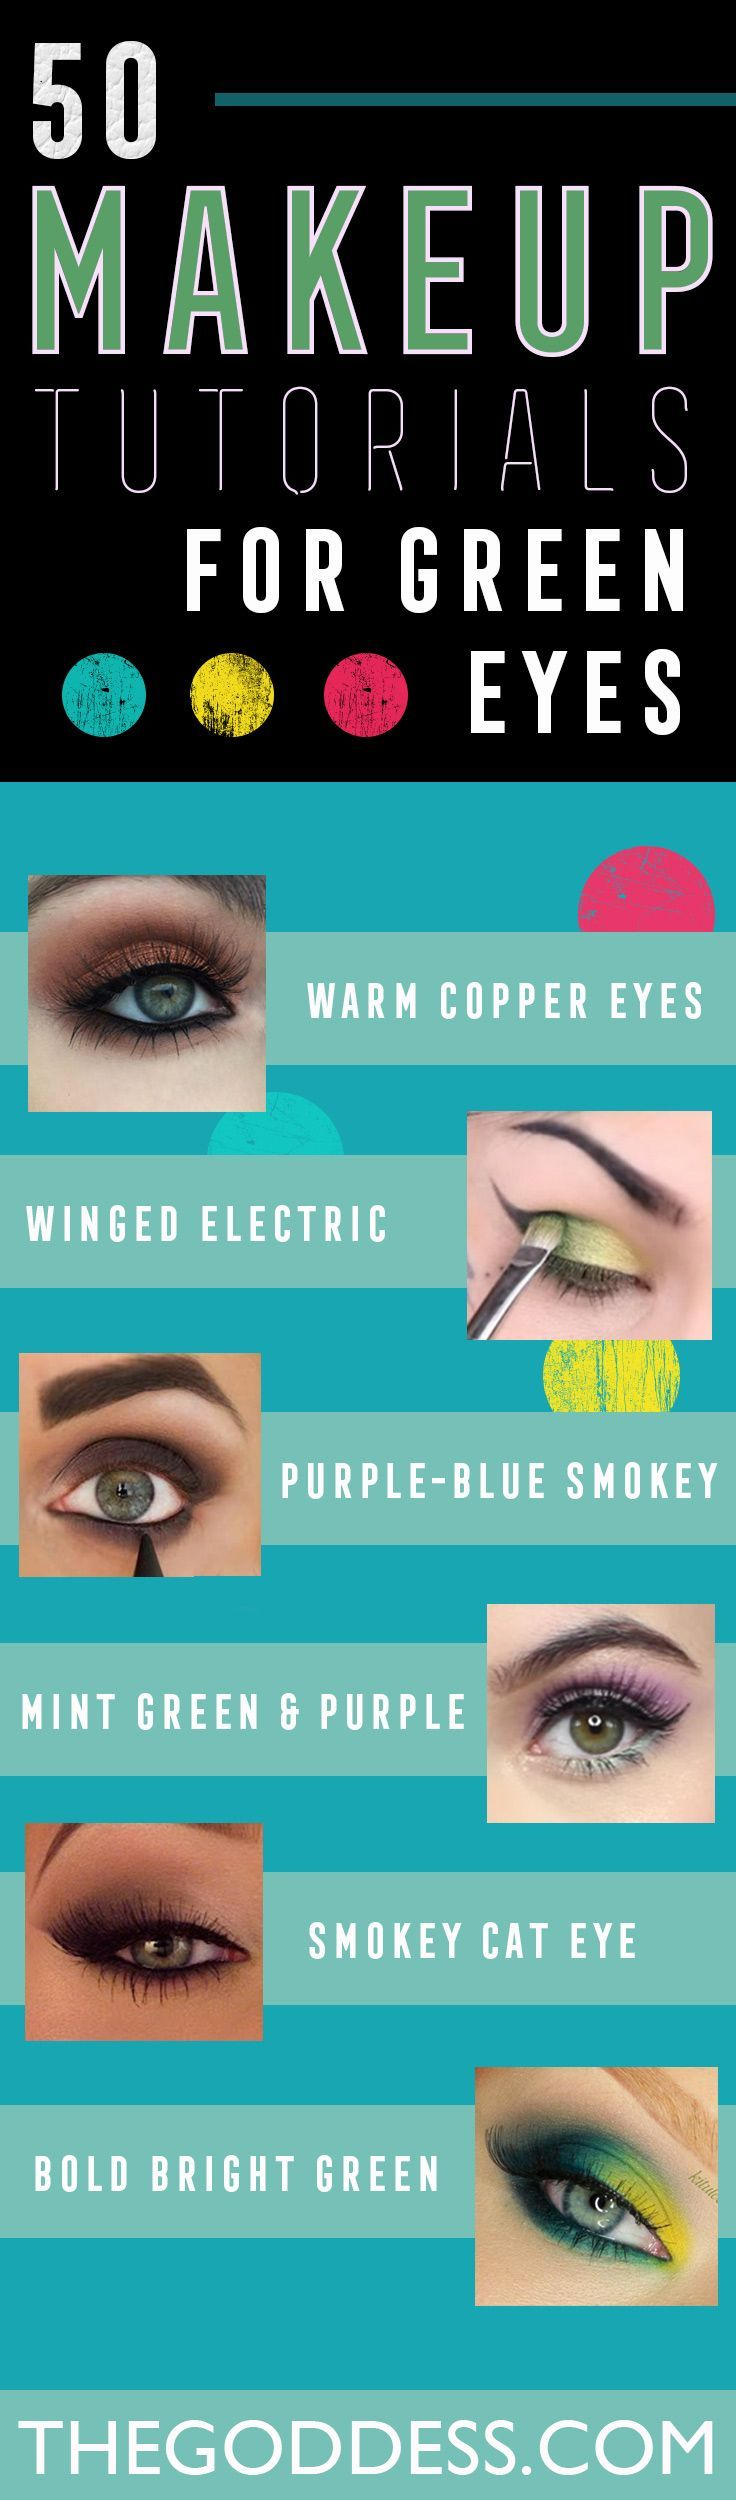 50 perfect makeup tutorials for green eyes | beauty ideas